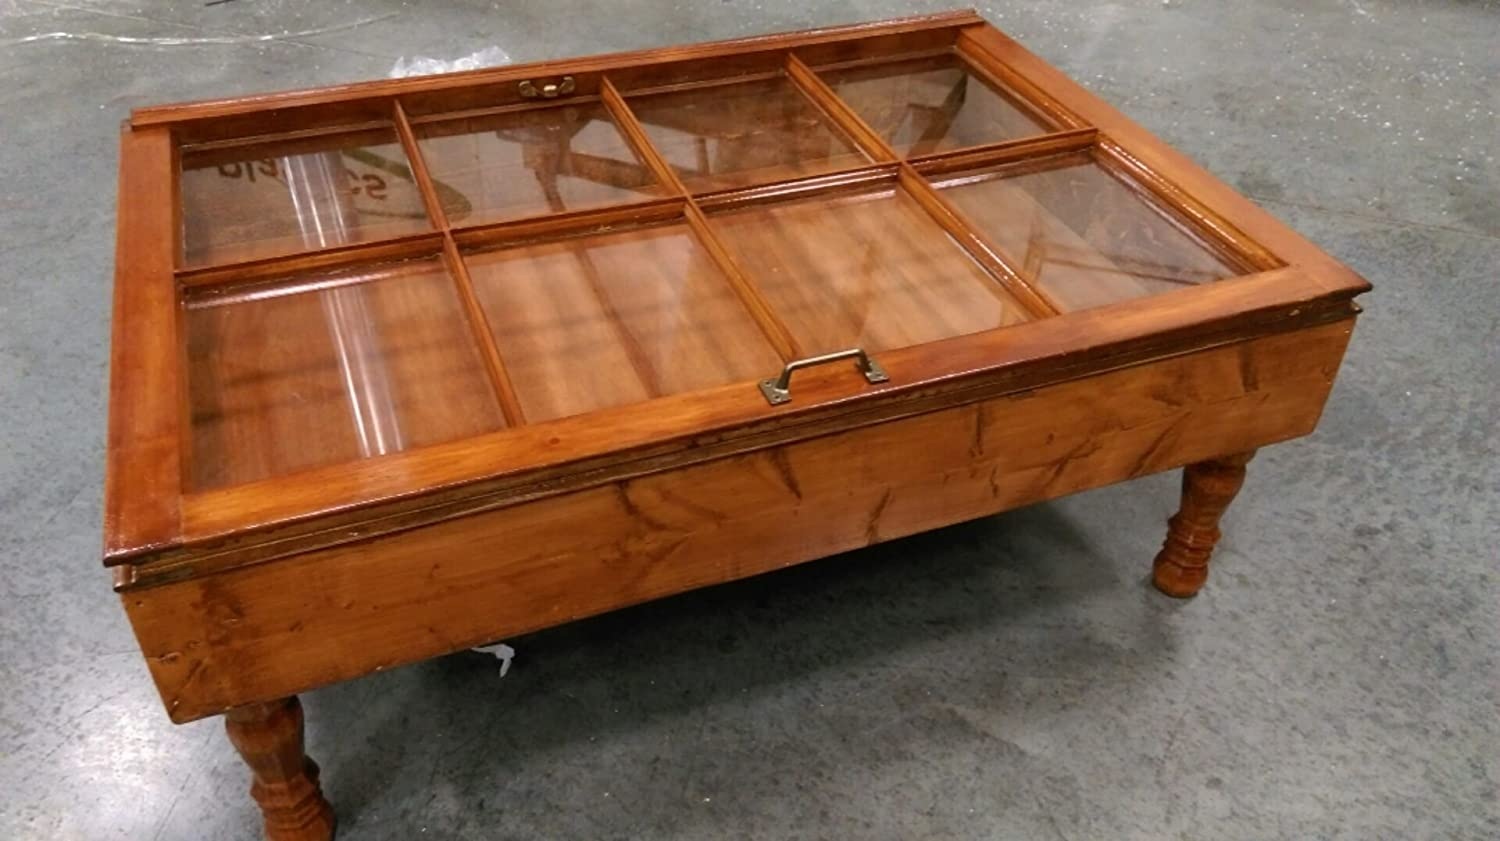 Amazon.com: Beautiful Wood Shadow Box Coffee Table   Window Coffee Table    Display Coffee Table   Storage Coffee Table   Rustic Coffee Table   Vintage  ...